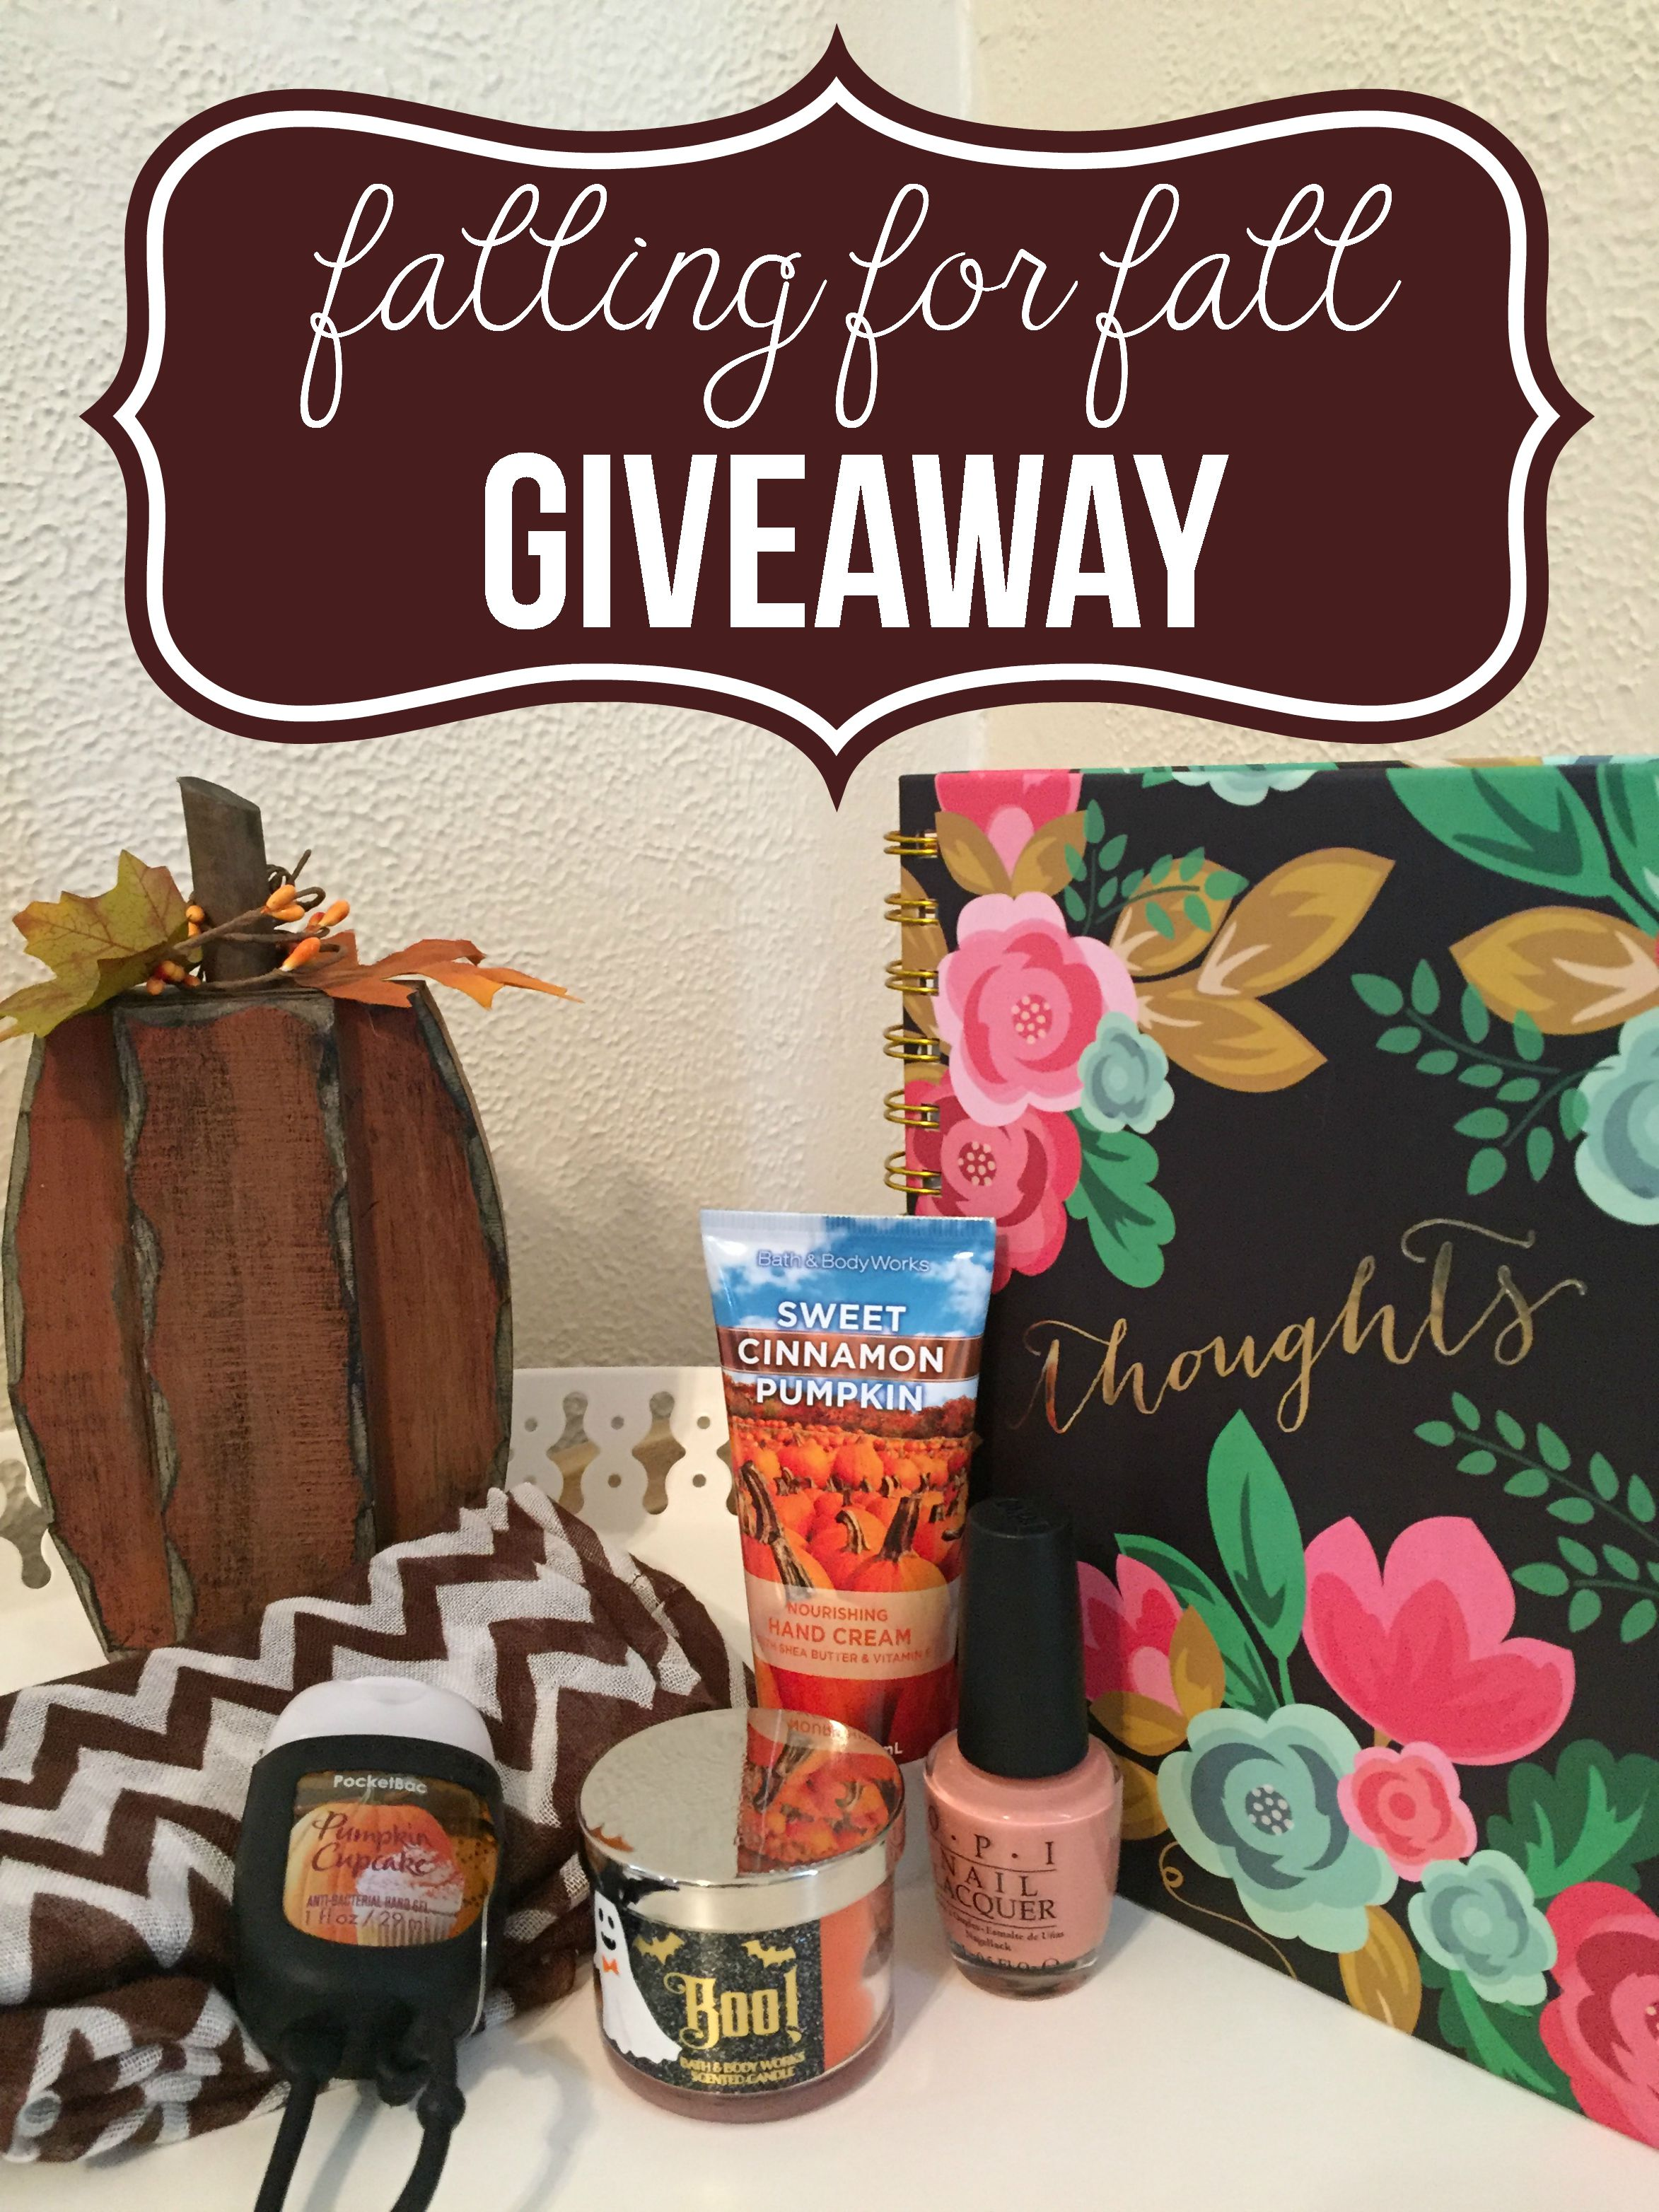 Falling for Fall Giveaway Image